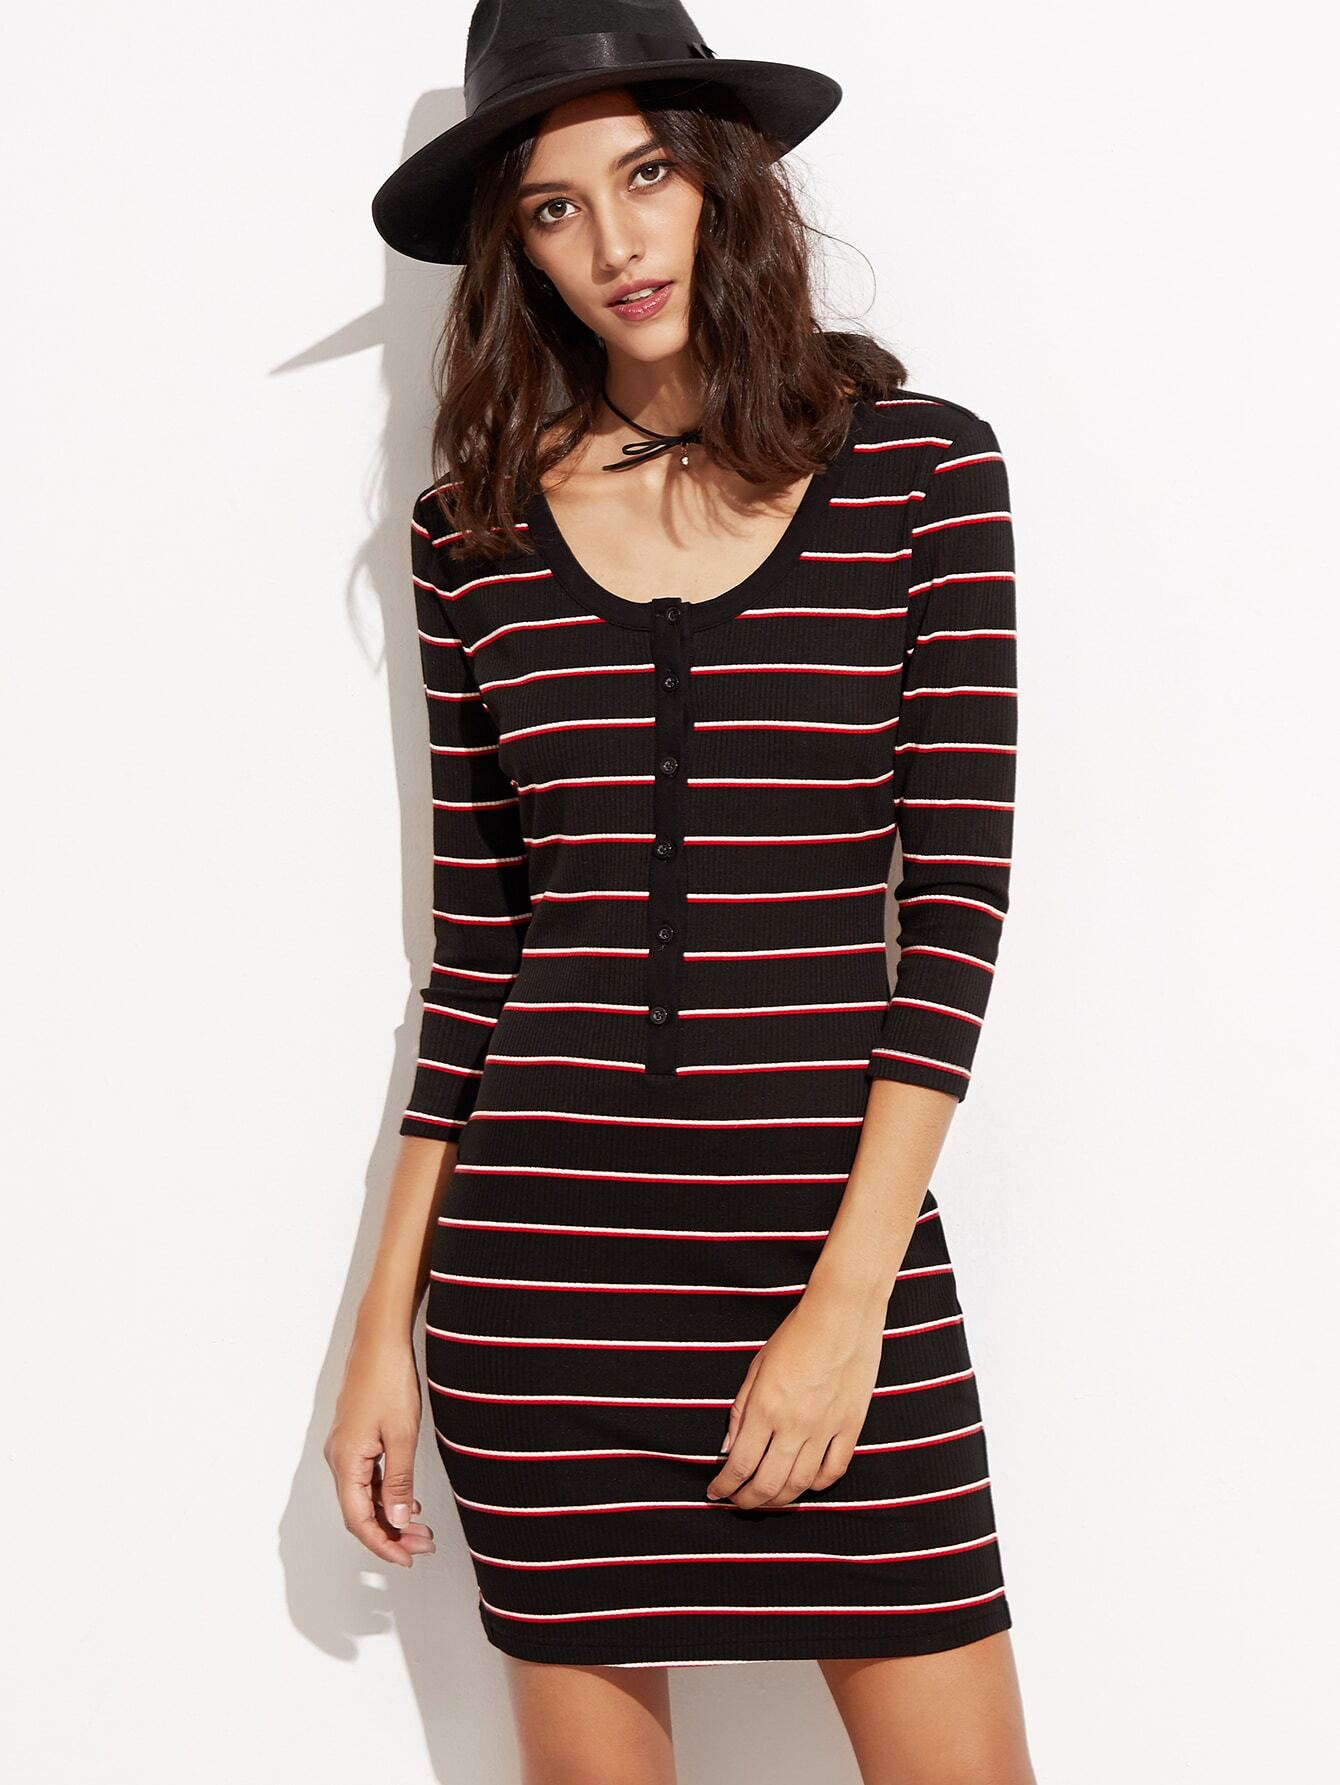 Black Striped Button Front Ribbed Sheath Dress dress160909508